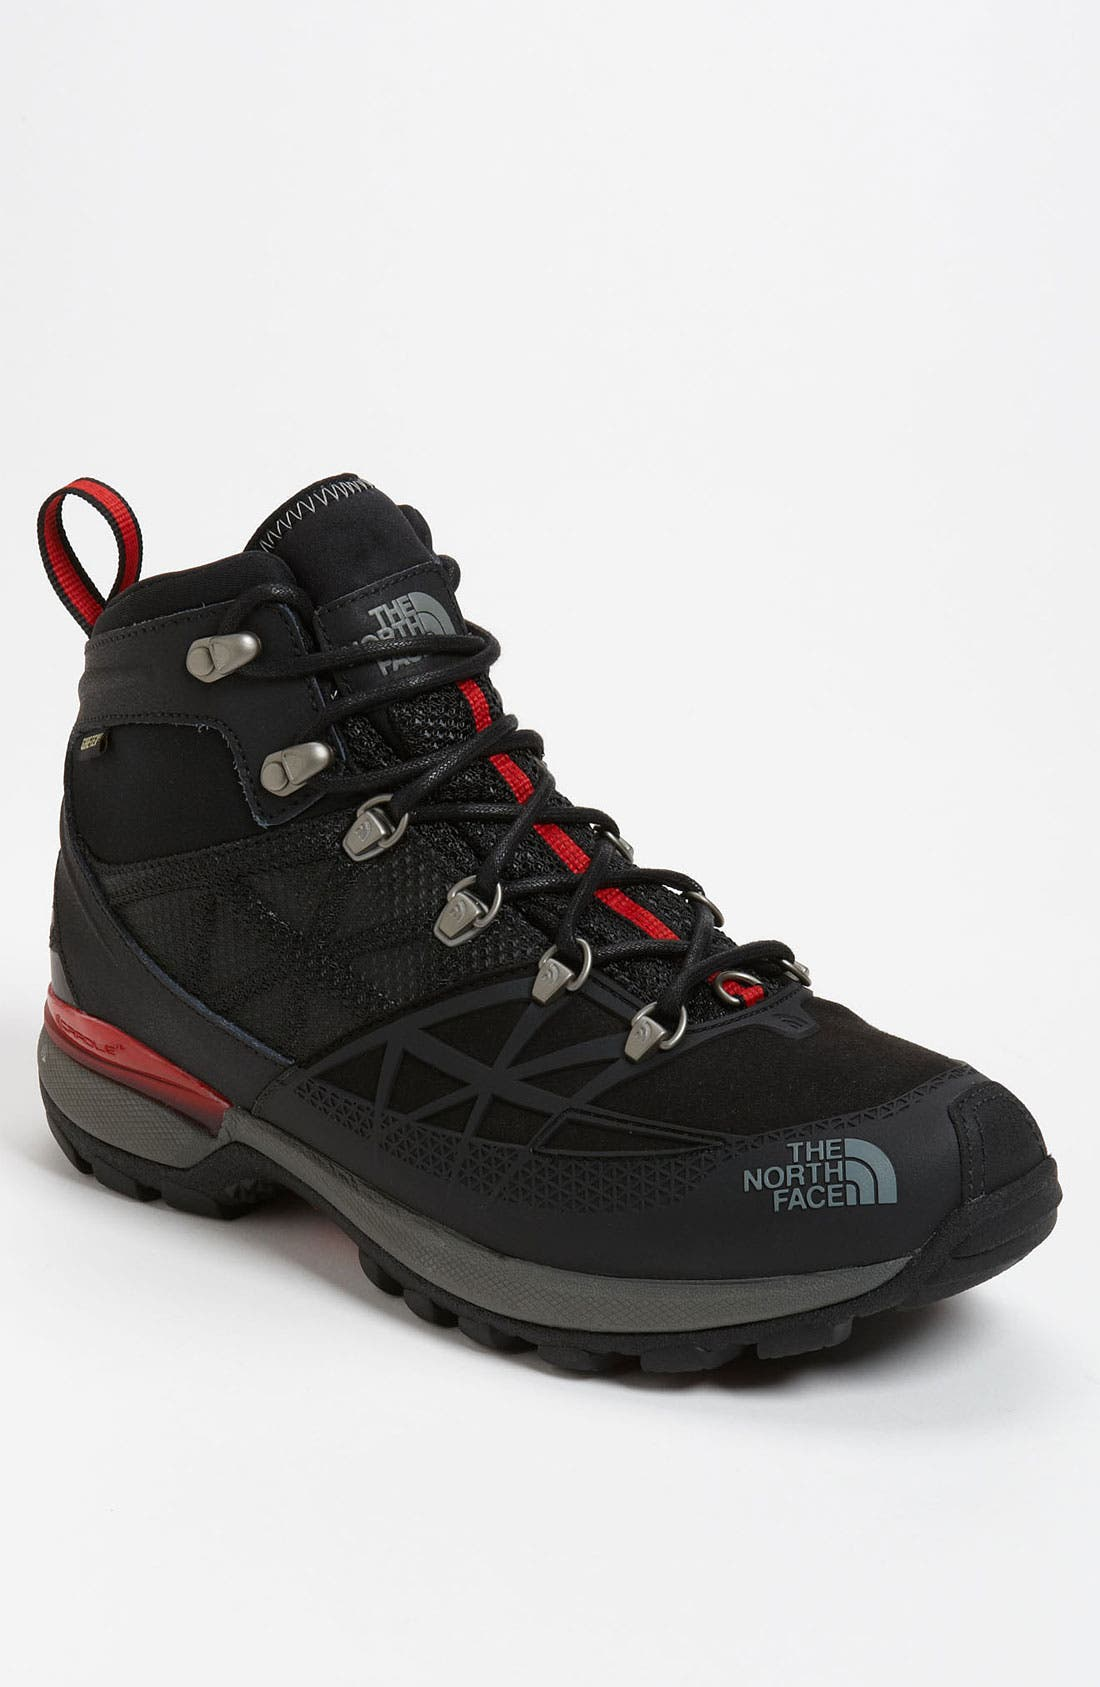 Main Image - The North Face 'Iceflare Mid GTX' Boot (Online Only)